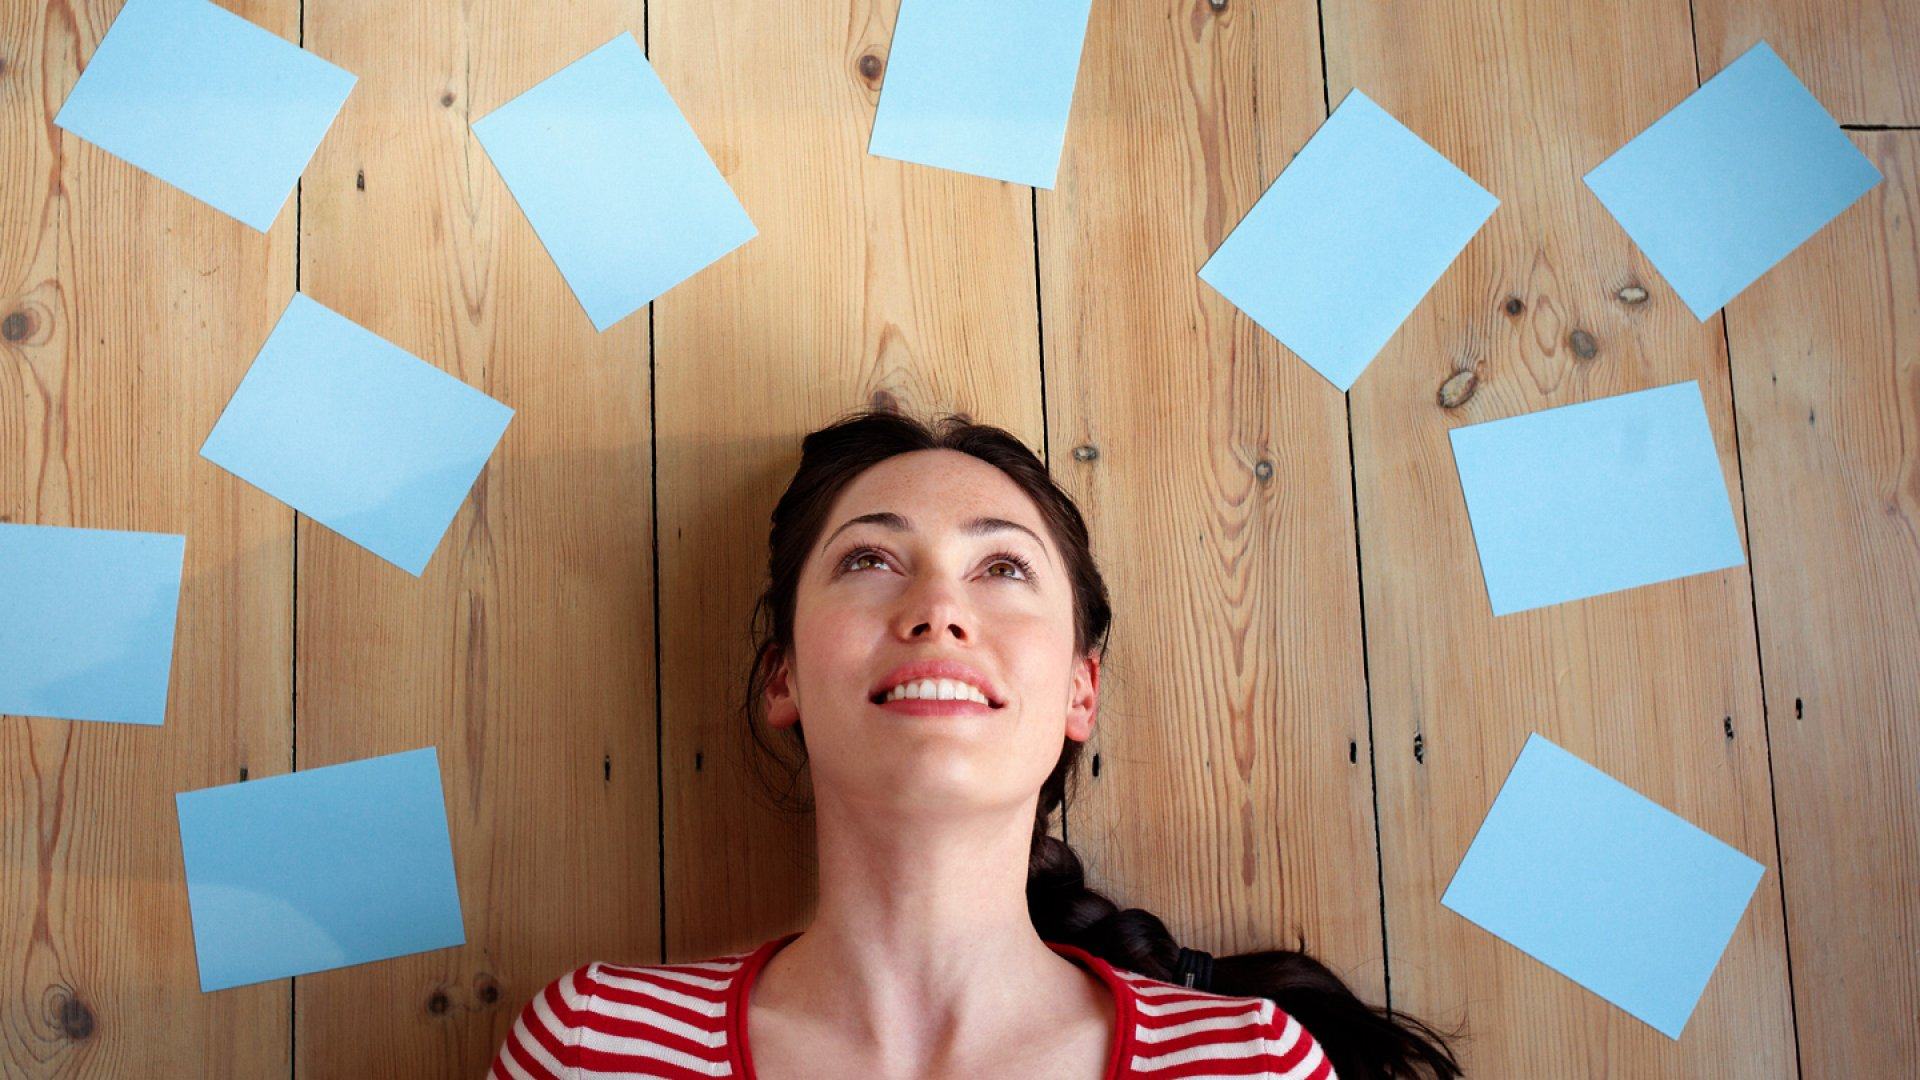 10 Everyday Things Creative People Do That Lead to Success